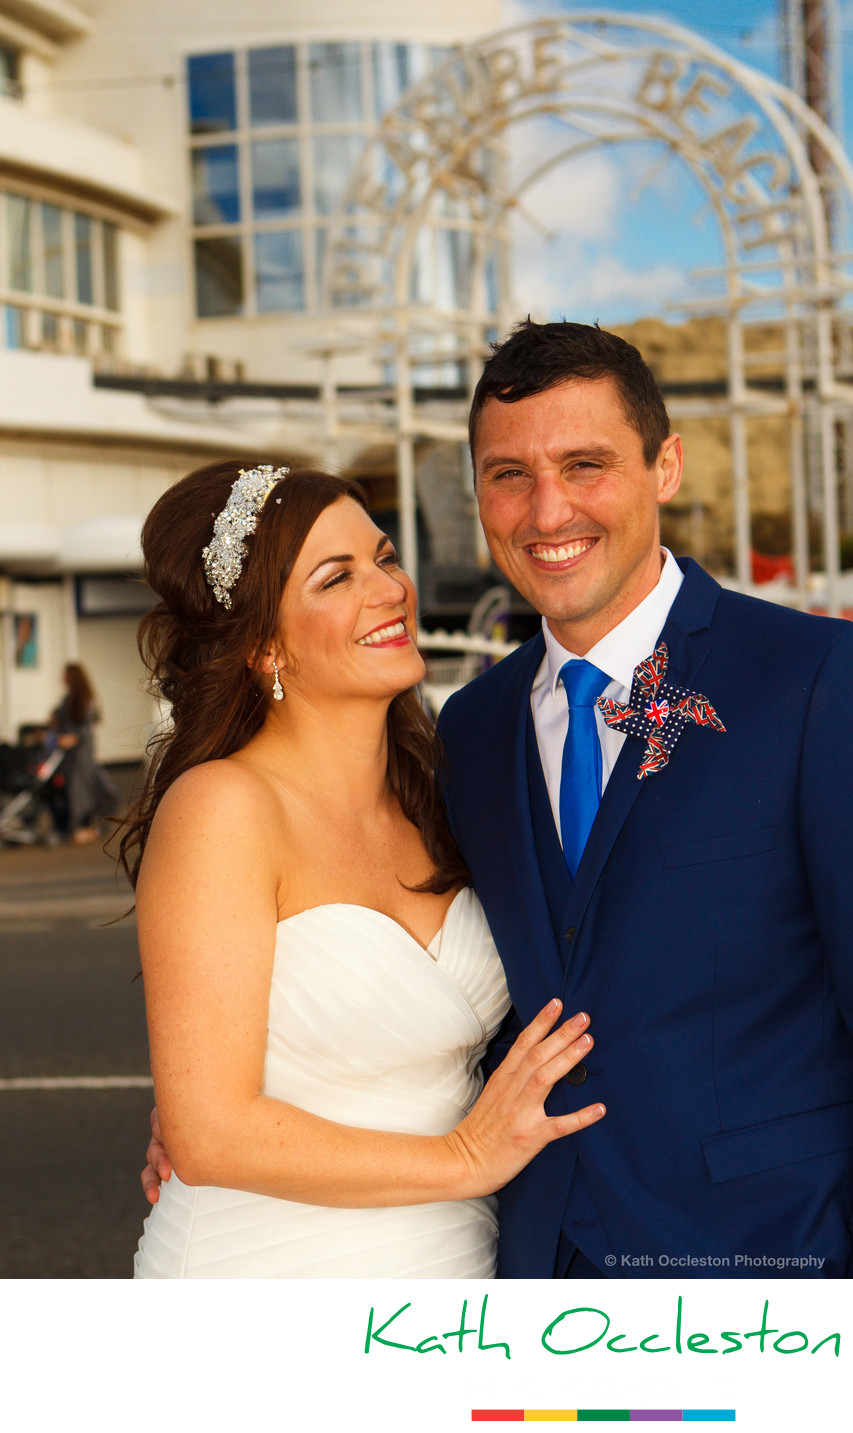 Blackpool Pleasure Beach Wedding